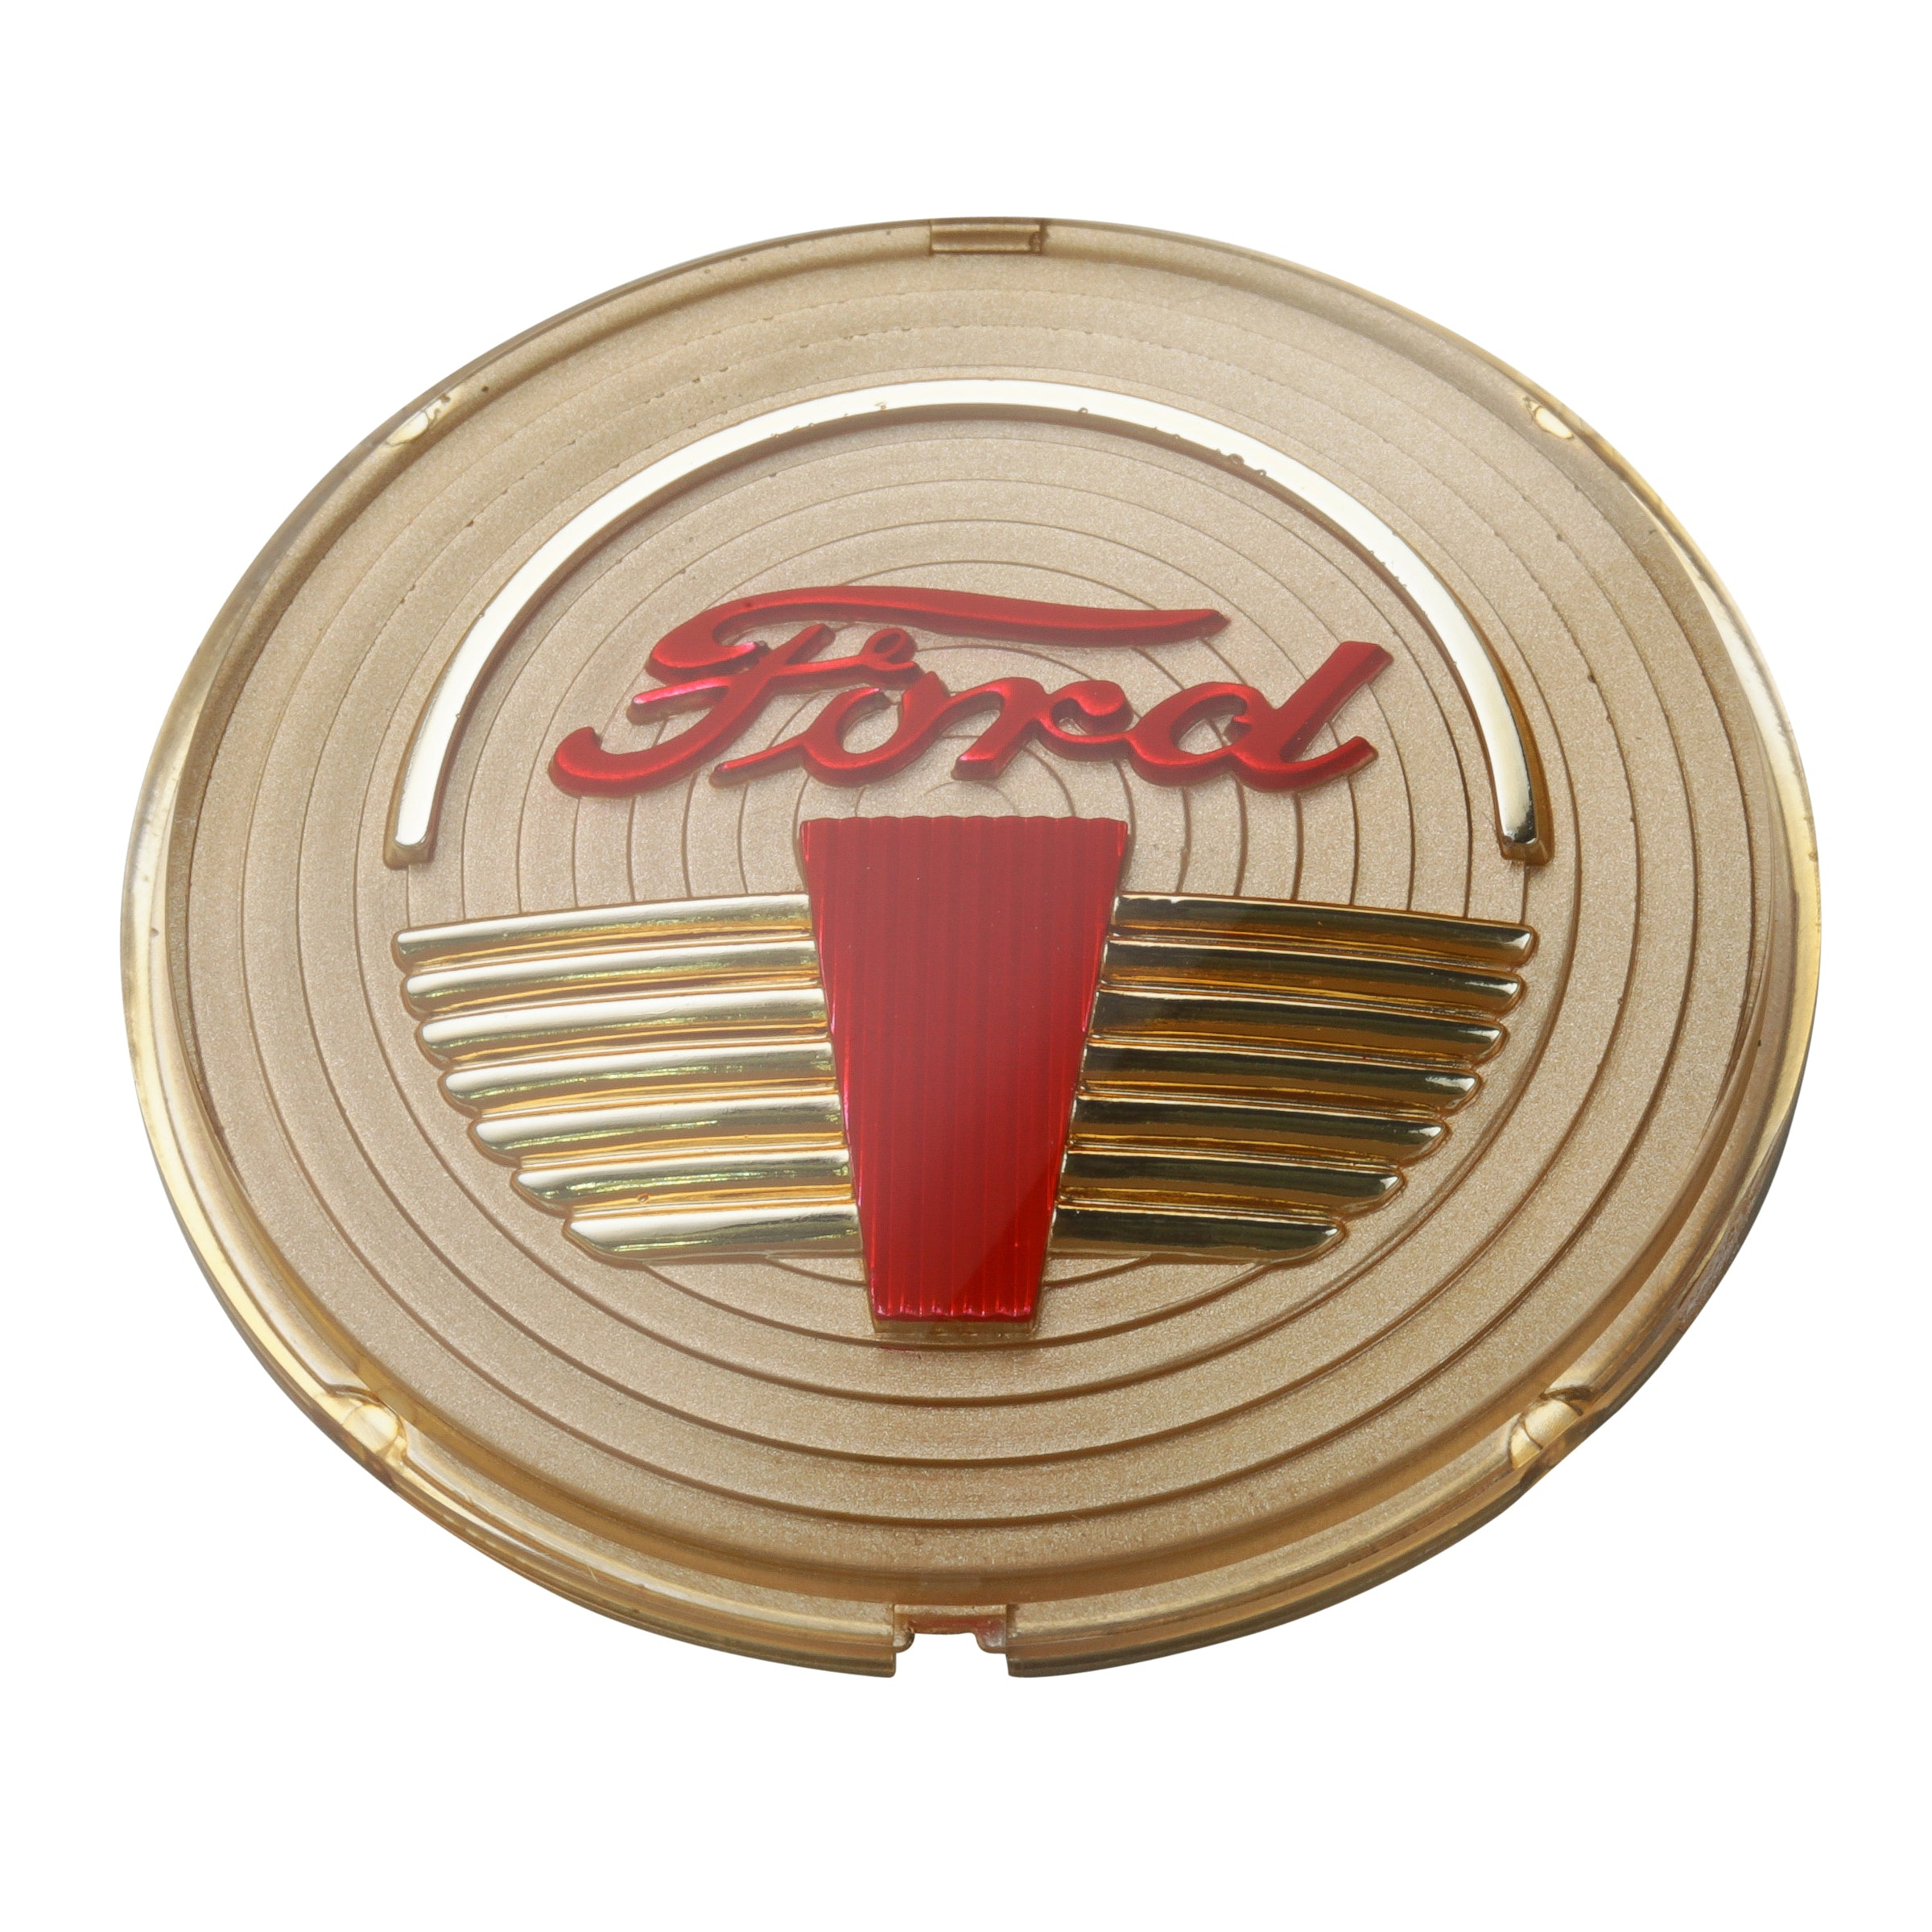 Horn Button • 1946 Convertible & Wagon